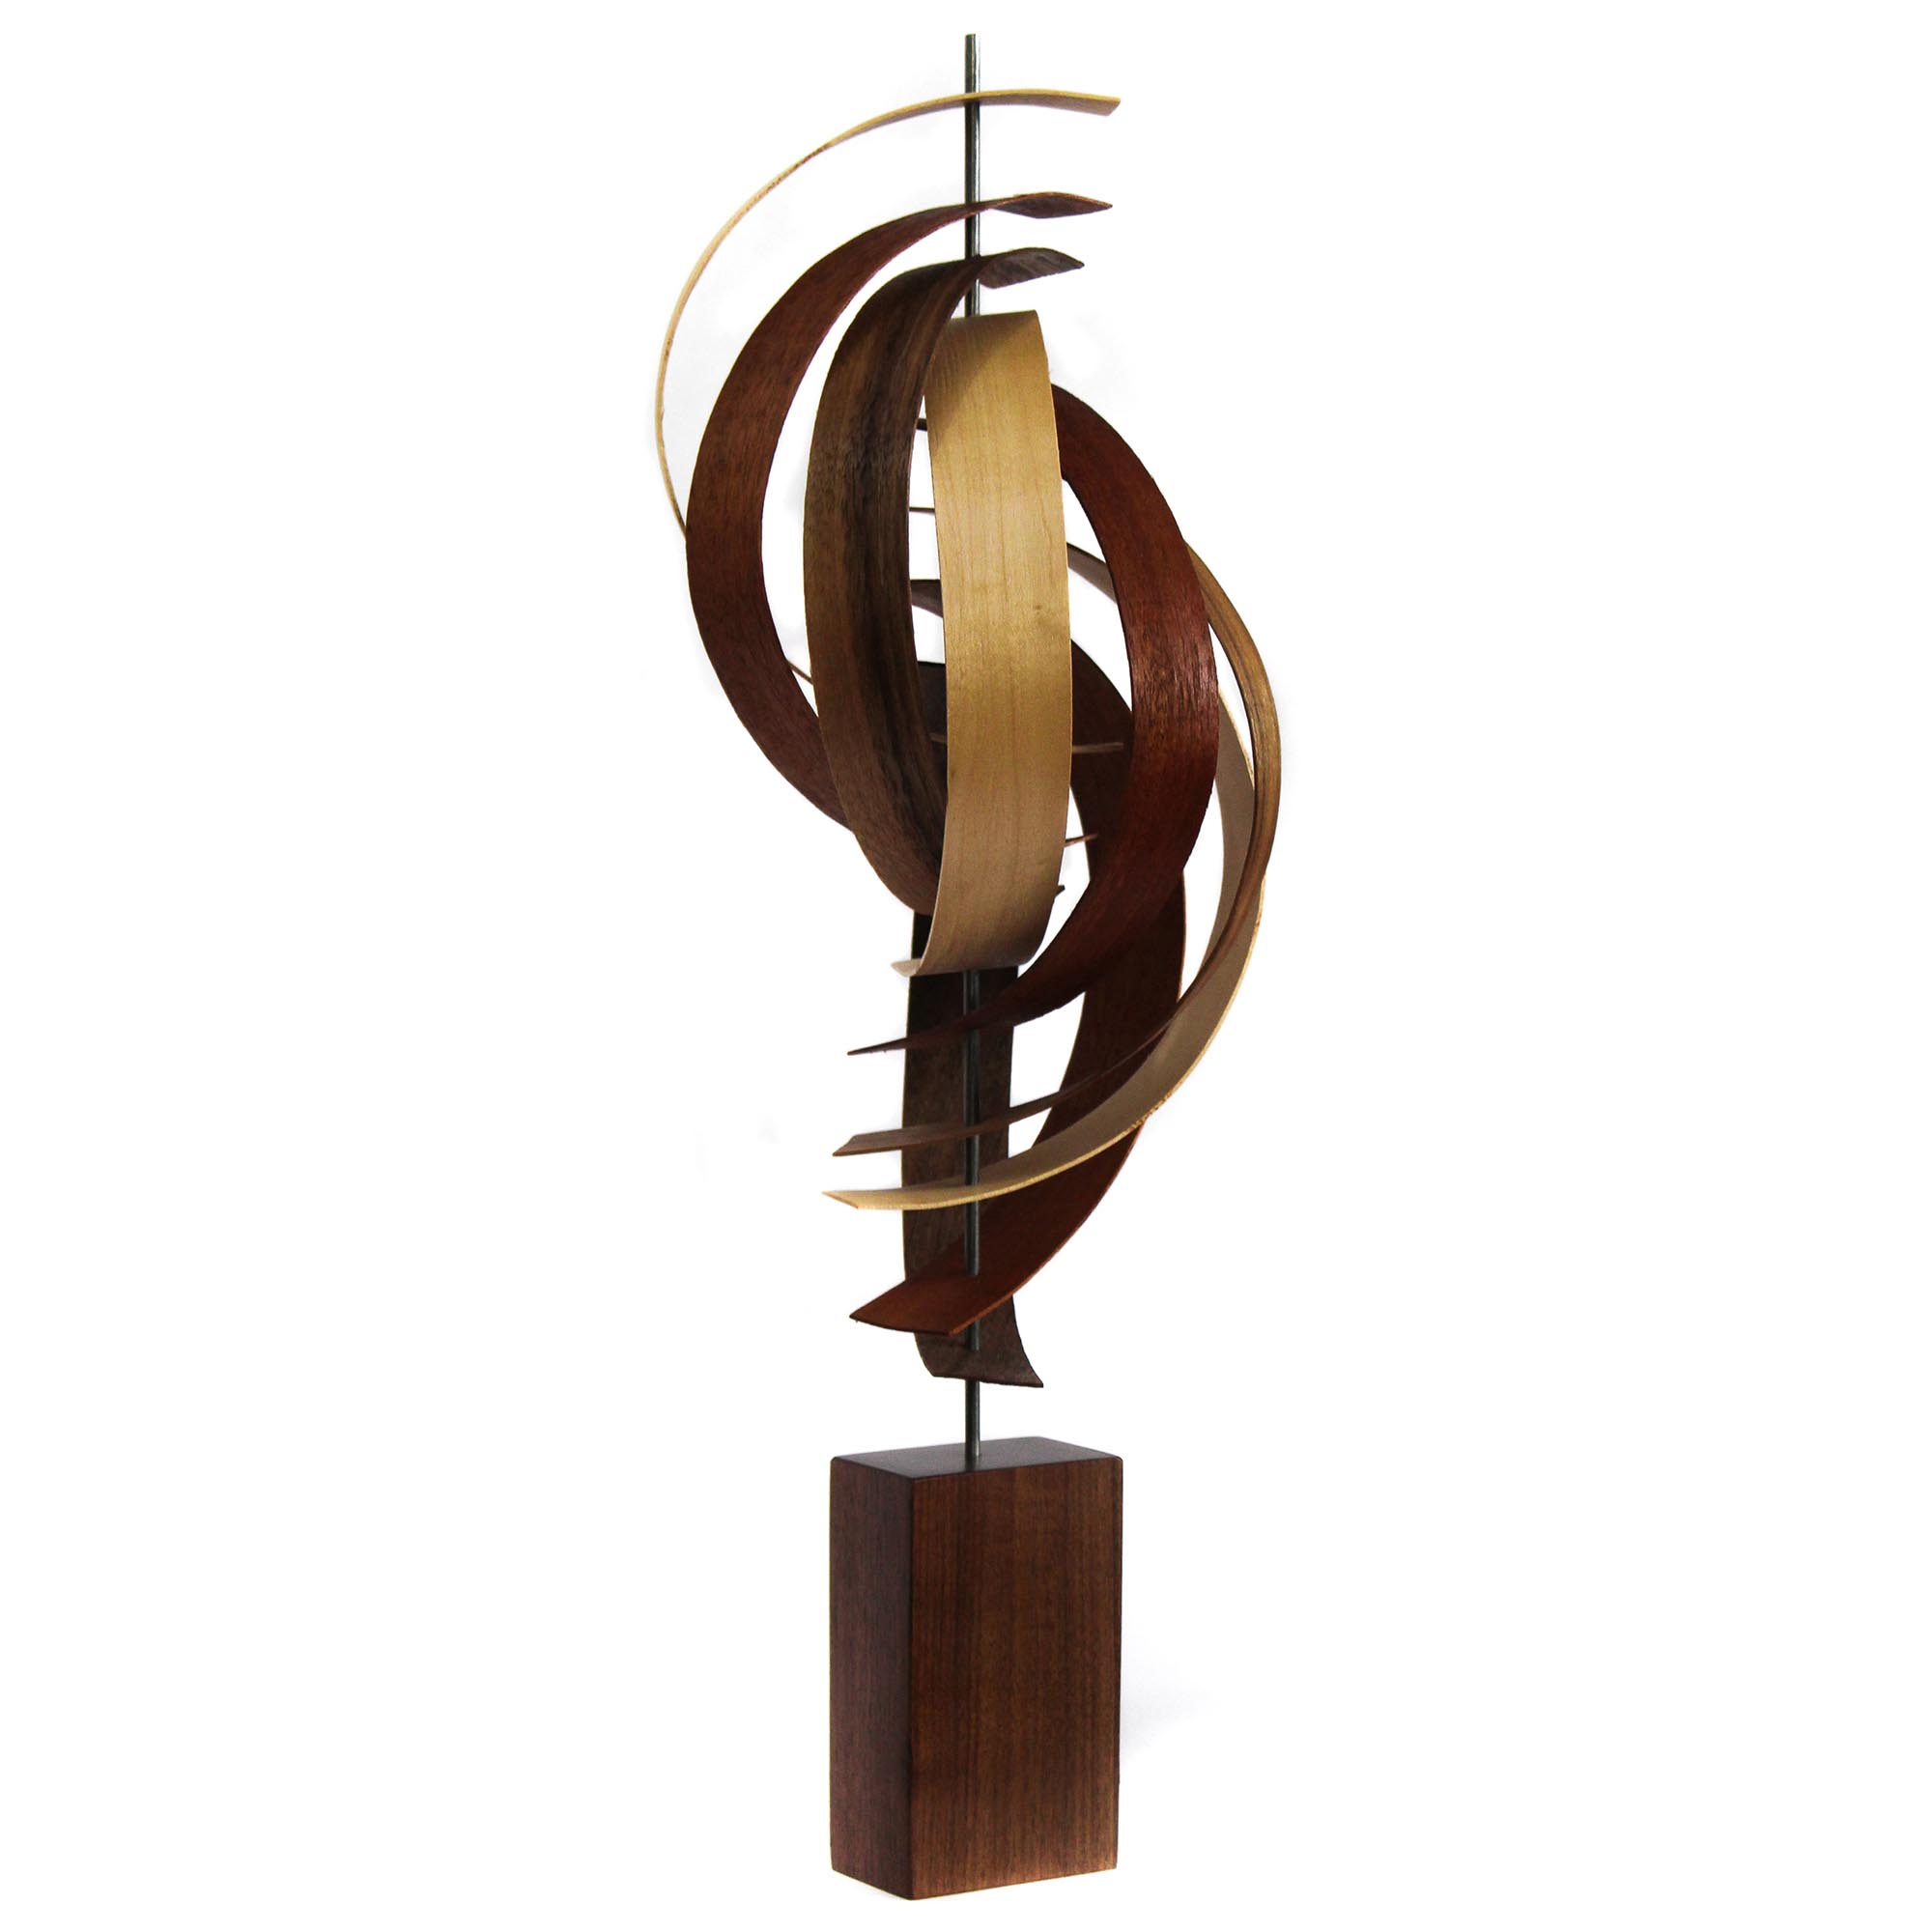 Reach by Jackson Wright - Modern Wood Sculpture, Mid-Century Home Decor - Image 2